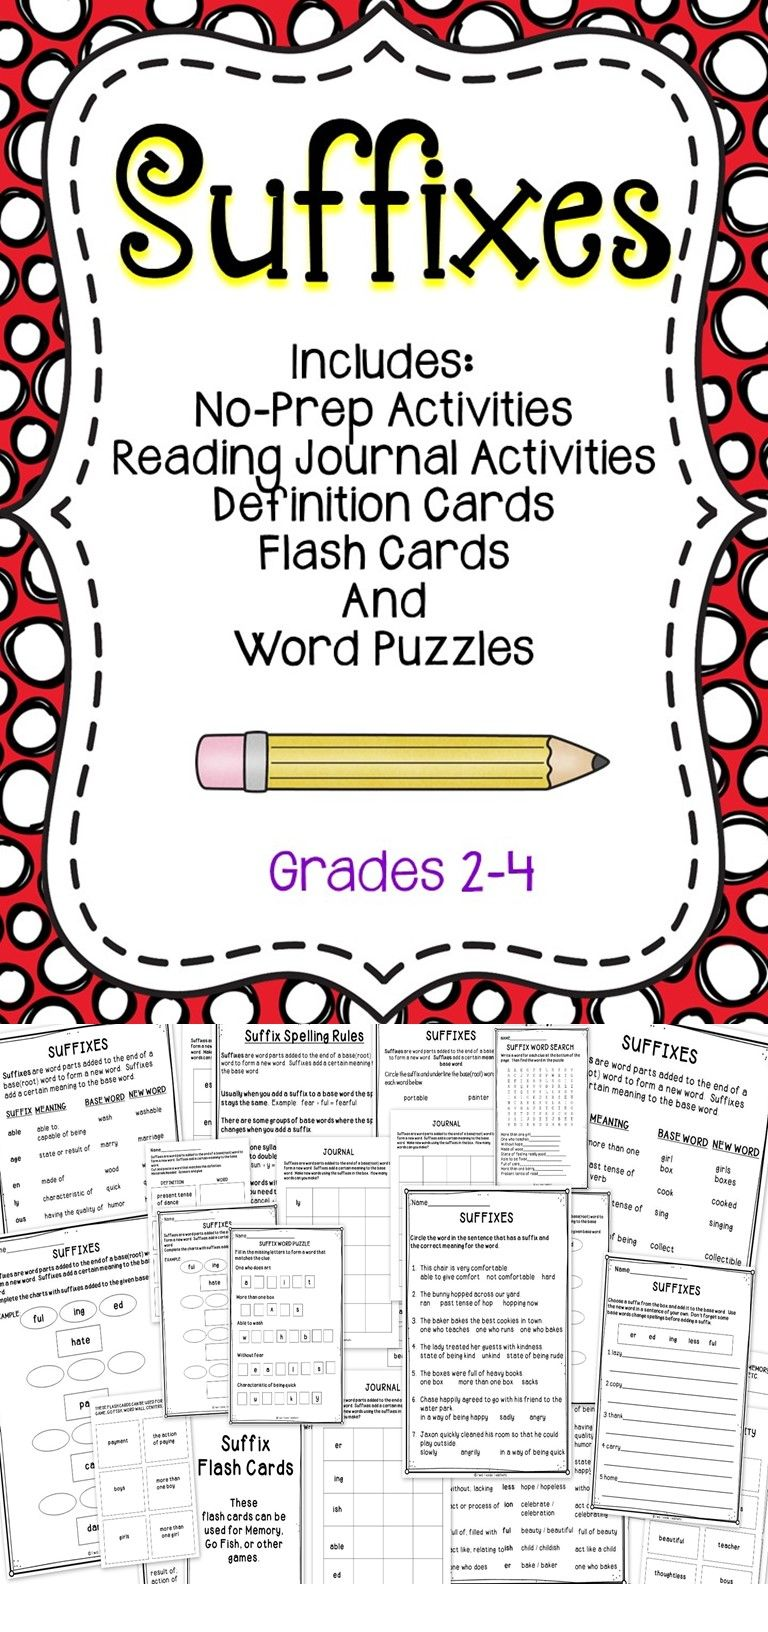 Suffixes | Activities, Students and Gaming